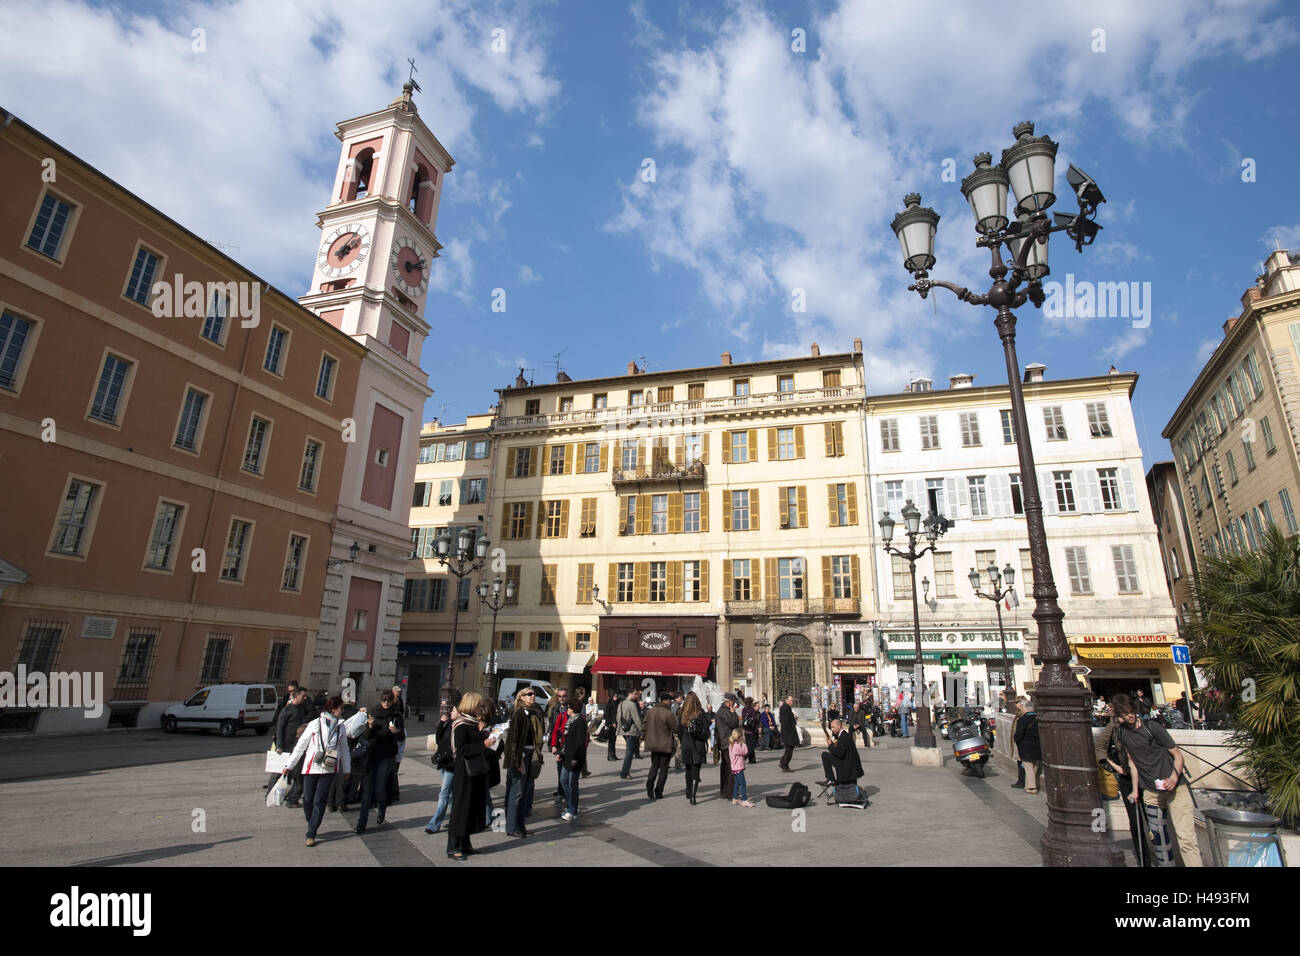 France, Cote d'Azur, Nice, Place you palace in the palace de Justice with the clock tower the palace Rusca, Stock Photo